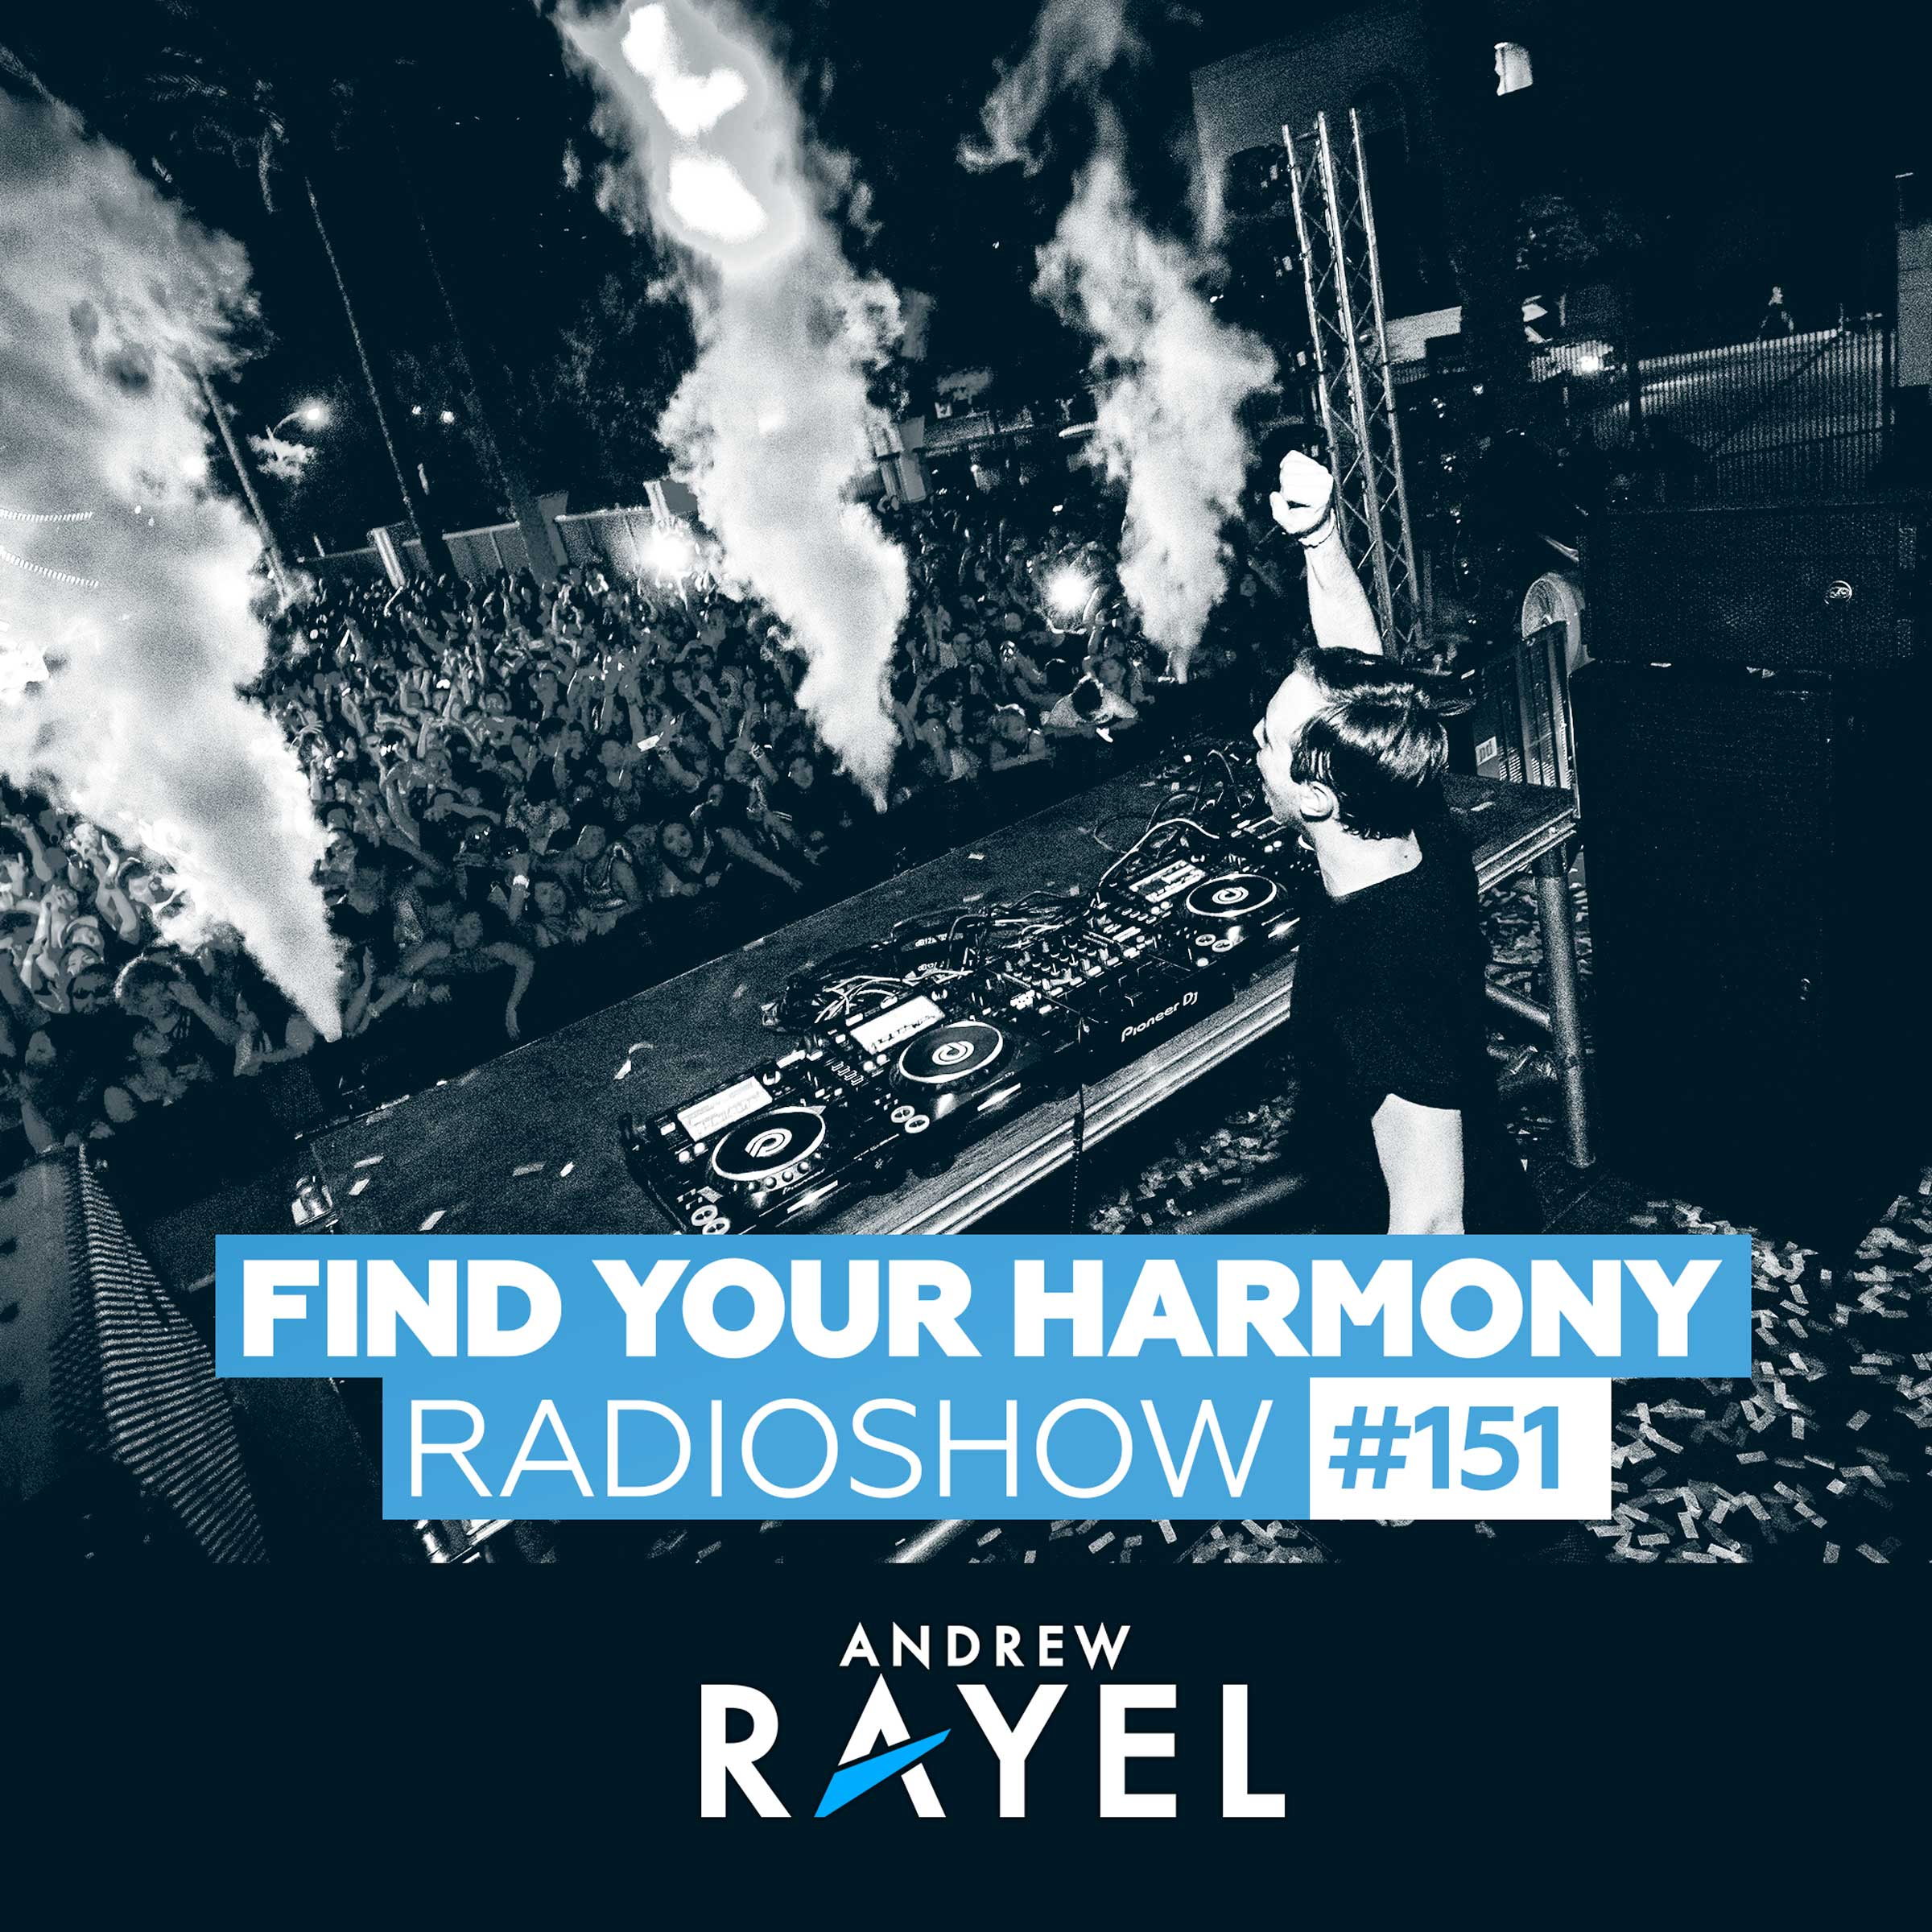 Find Your Harmony Radioshow #151